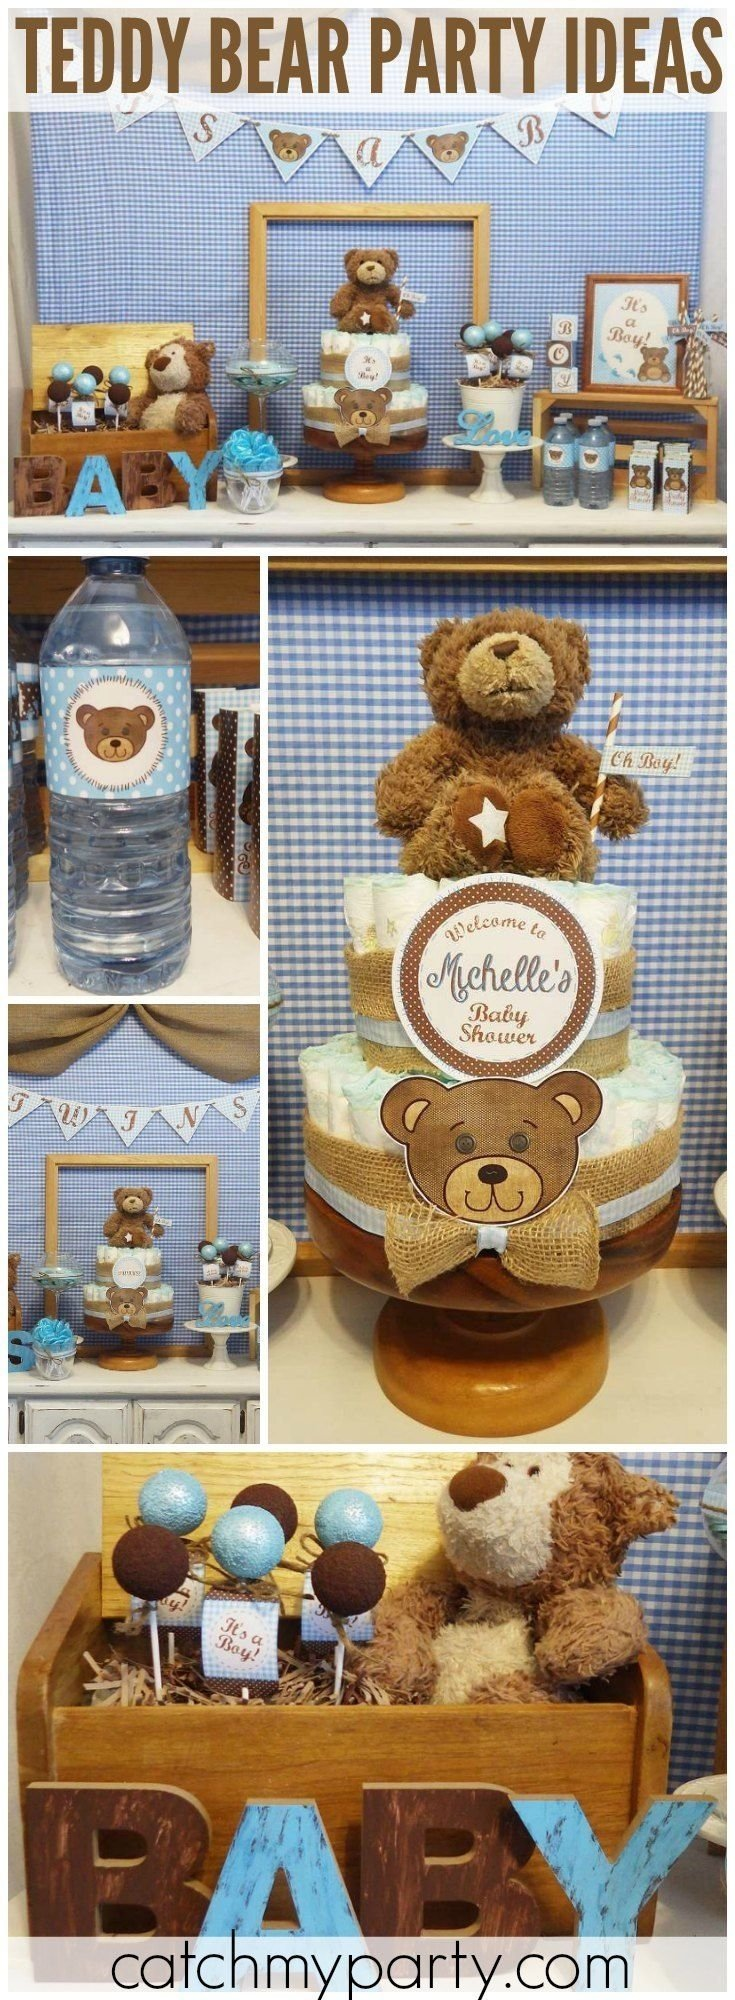 10 Fantastic Teddy Bear Baby Shower Ideas themes baby shower teddy bear baby shower decorations ideas with 1 2020